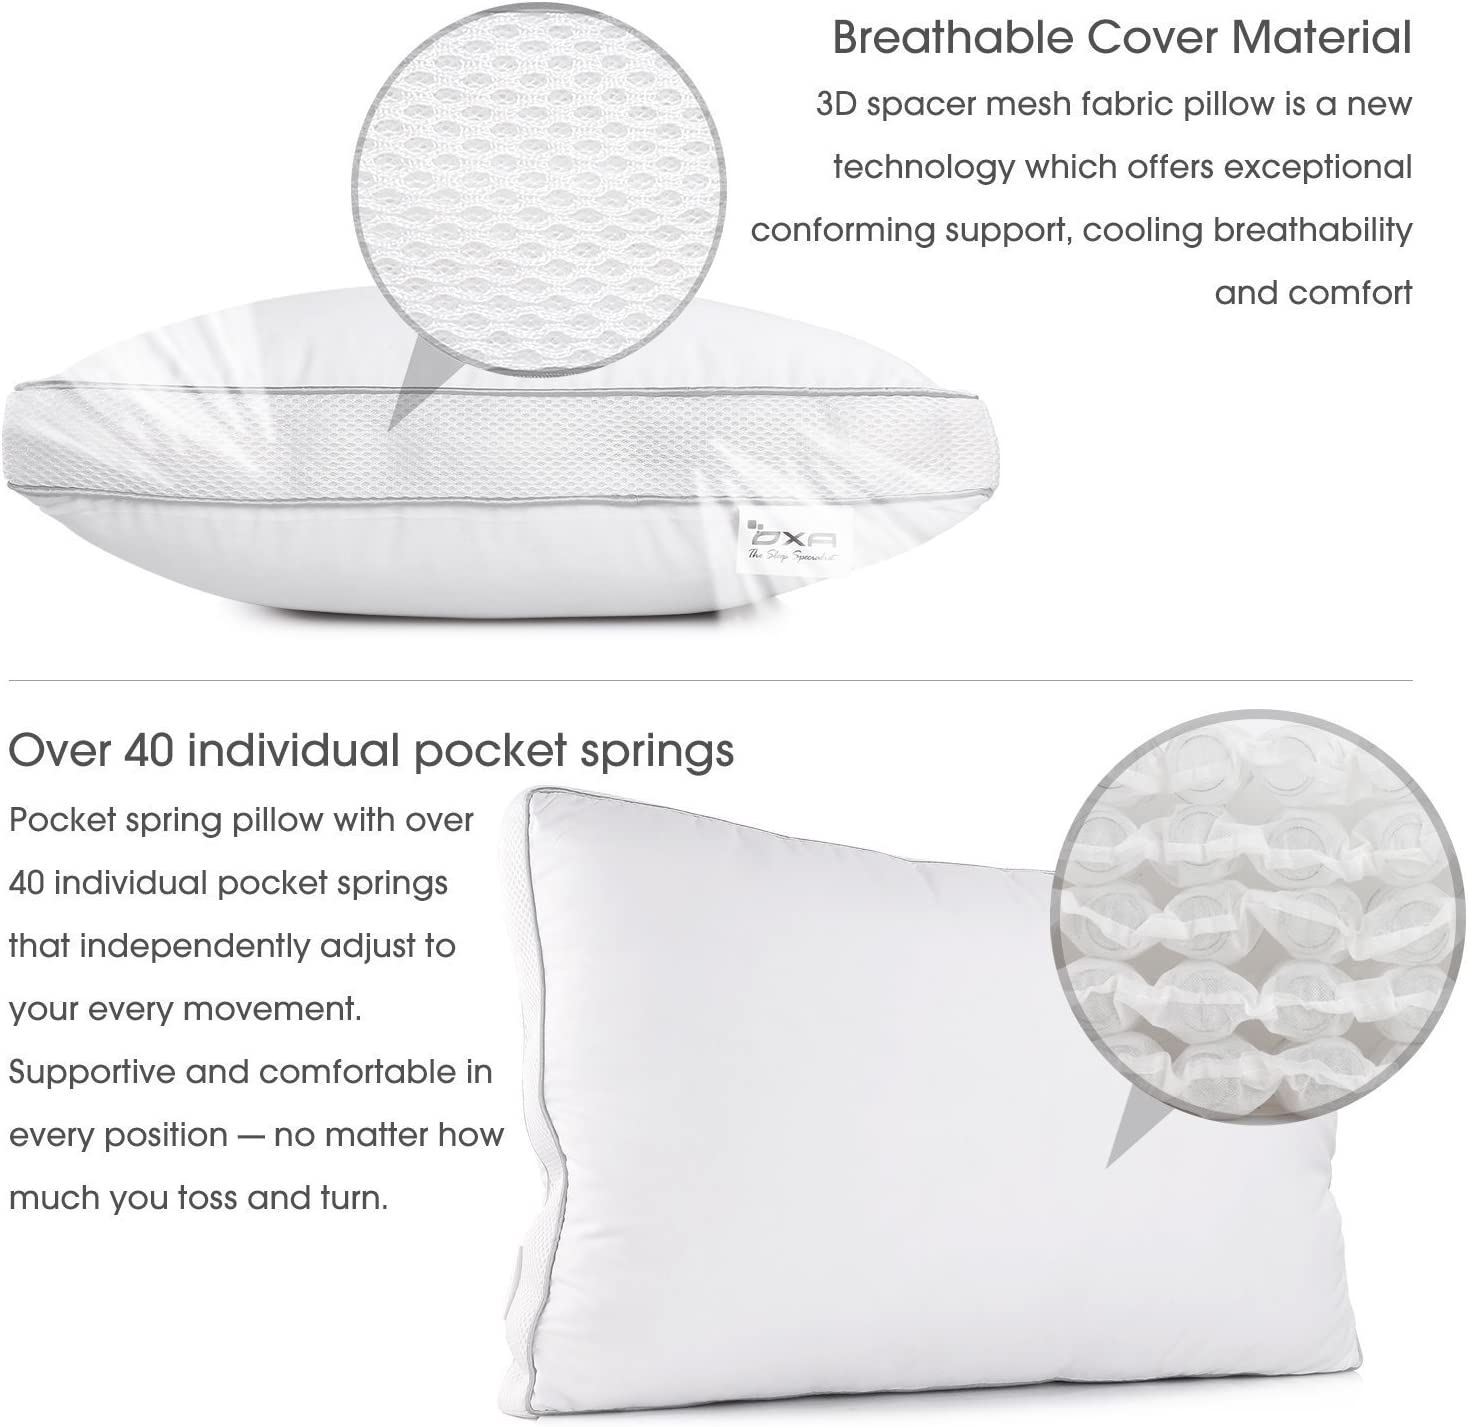 Luxurious Queen Breathable Bed Pillows for Sleeping OXA Spring Contour Pillow Firm and Soft with Extra Filling Relieving Neck and Back Pain with 40 Independent Pocket Coils